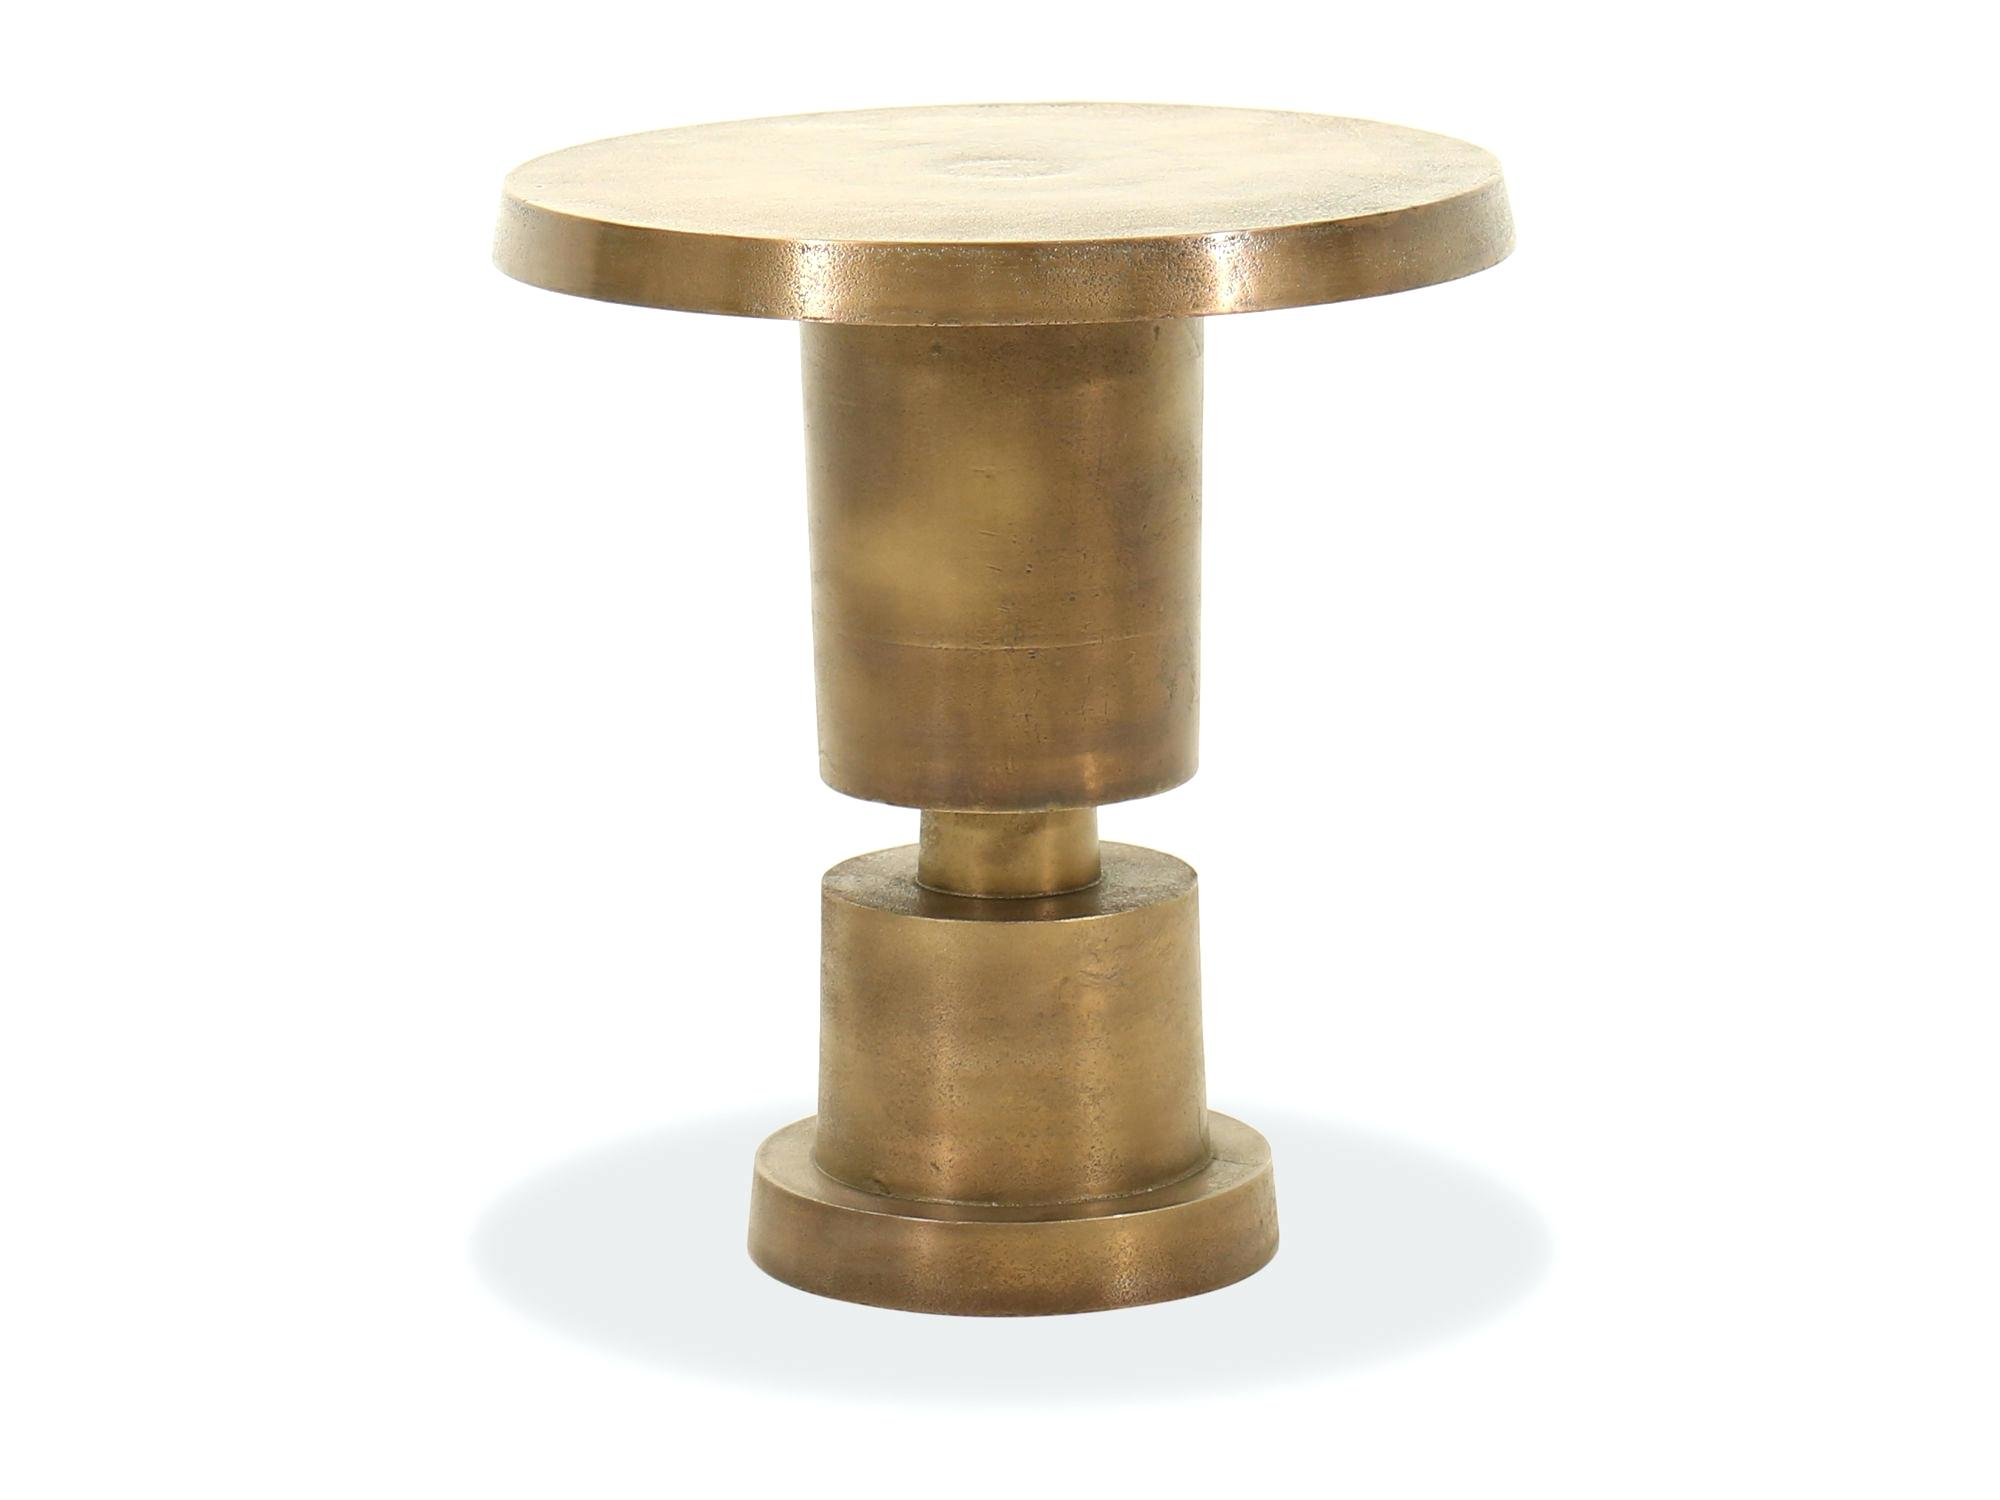 gold cala hammered drum accent table target kitchen adorable marble conical base aluminum brothers furniture marvelous cylindrical outdoor metal full size wipe clean tablecloth